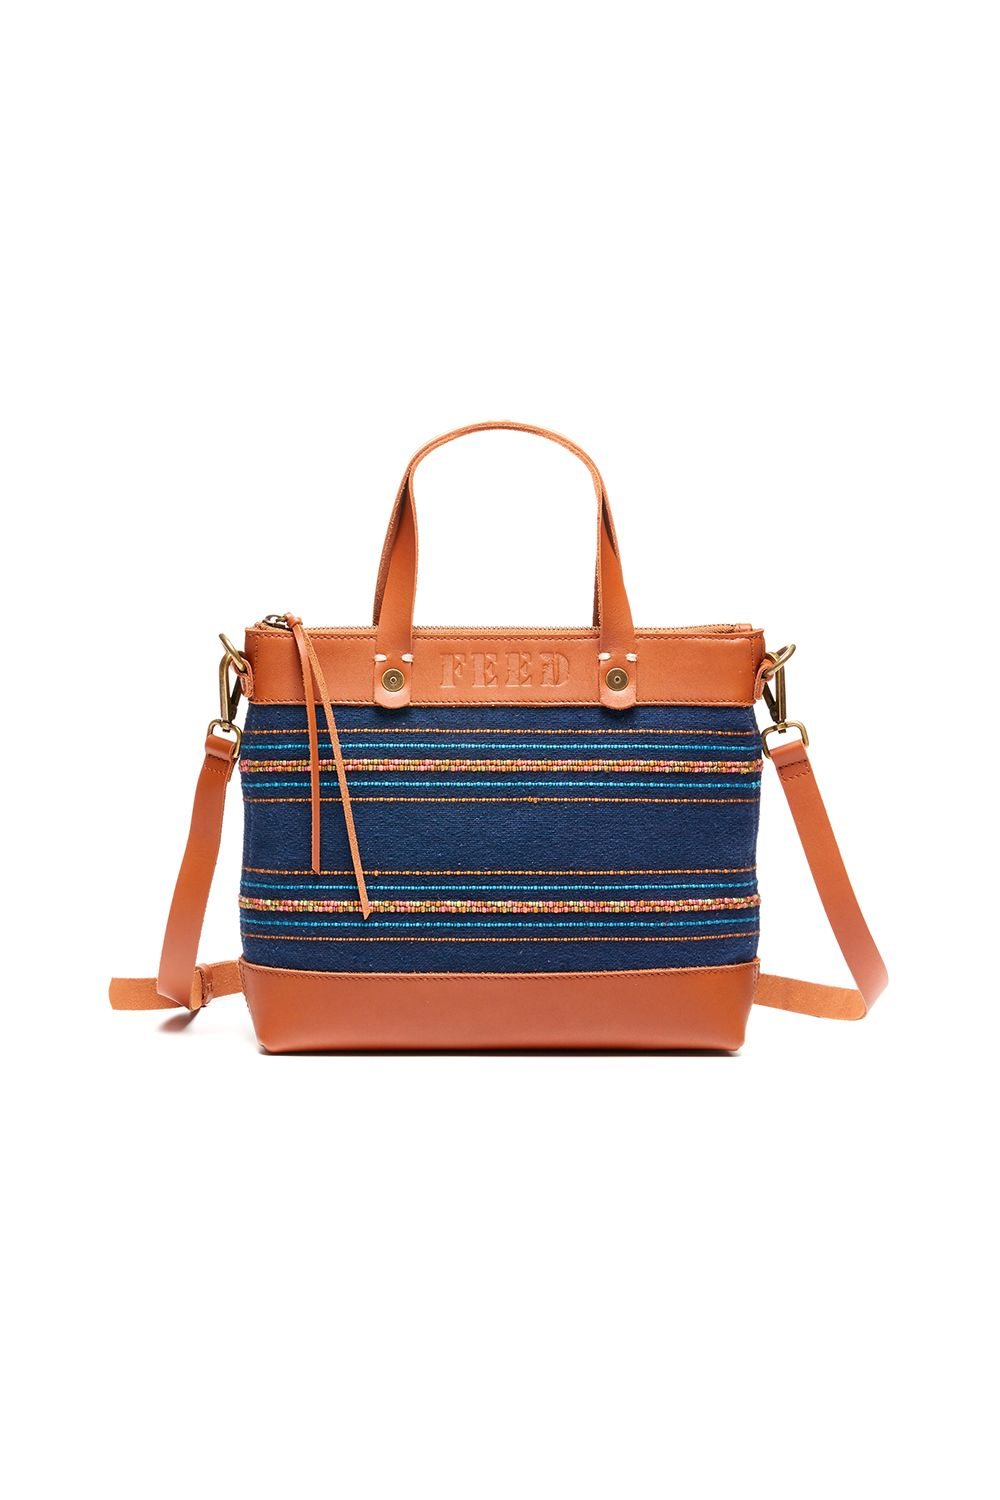 "<p>Started by Lauren Bush Lauren in 2007, FEED creates beautiful bags, accessories, and shirts that provide nutritious meals to those in need. It also works under fair-labor conditions, using environmentally friendly materials when possible, and alongside artisans in different countries to provide livelihood to underserved populations. Most items come stamped with a number—showing you just how many meals your purchase has provided. </p><p><a href=""https://www.feedprojects.com/bags/new-arrivals/eleanor-crossbody "" target=""_blank"" data-tracking-id=""recirc-text-link"">Shop the brand</a>.</p>"